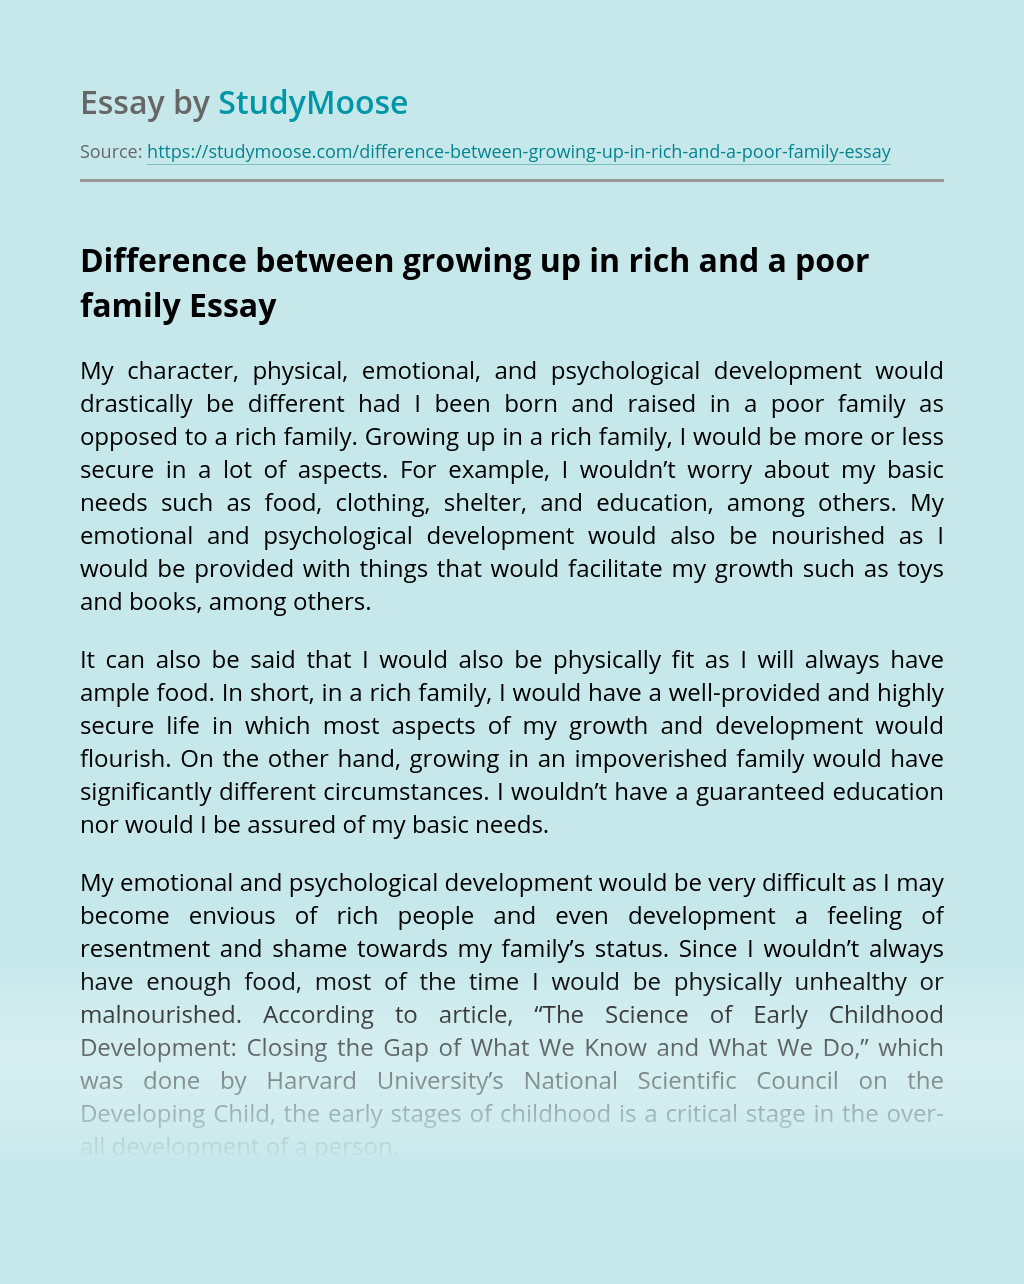 Difference between growing up in rich and a poor family